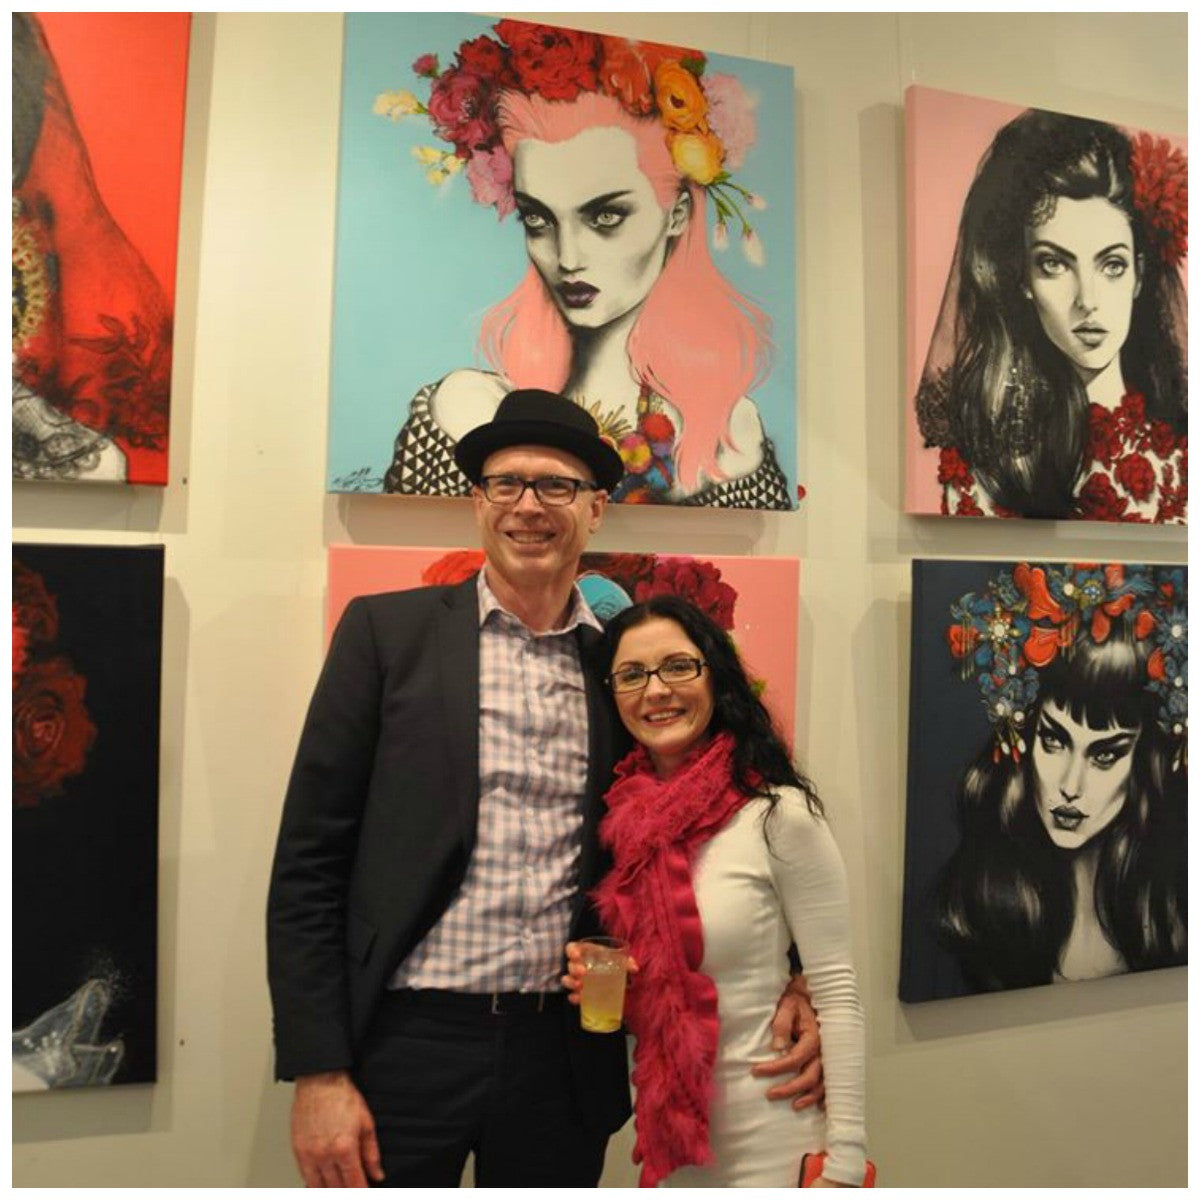 Curator Interview: Editor in Chief of beautiful.bizarre, Danijela Krha